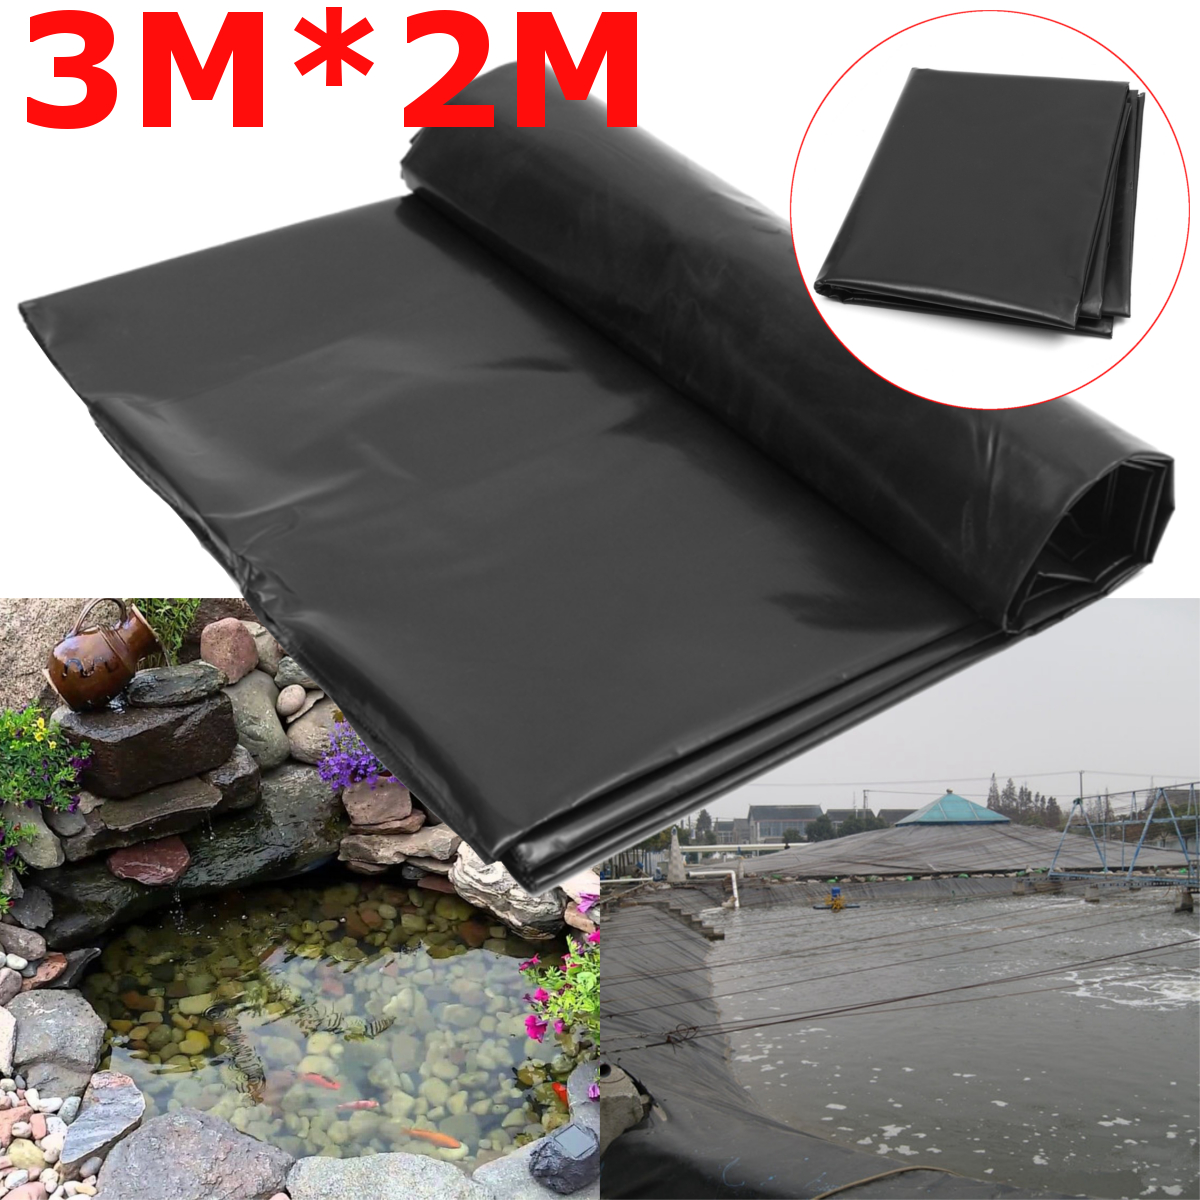 3X2M Black Fish Pond Liner Cloth Home Pool Reinforced HDPE Heavy Landscaping Pool Waterproof Garden Basin Pond Liners Cloth